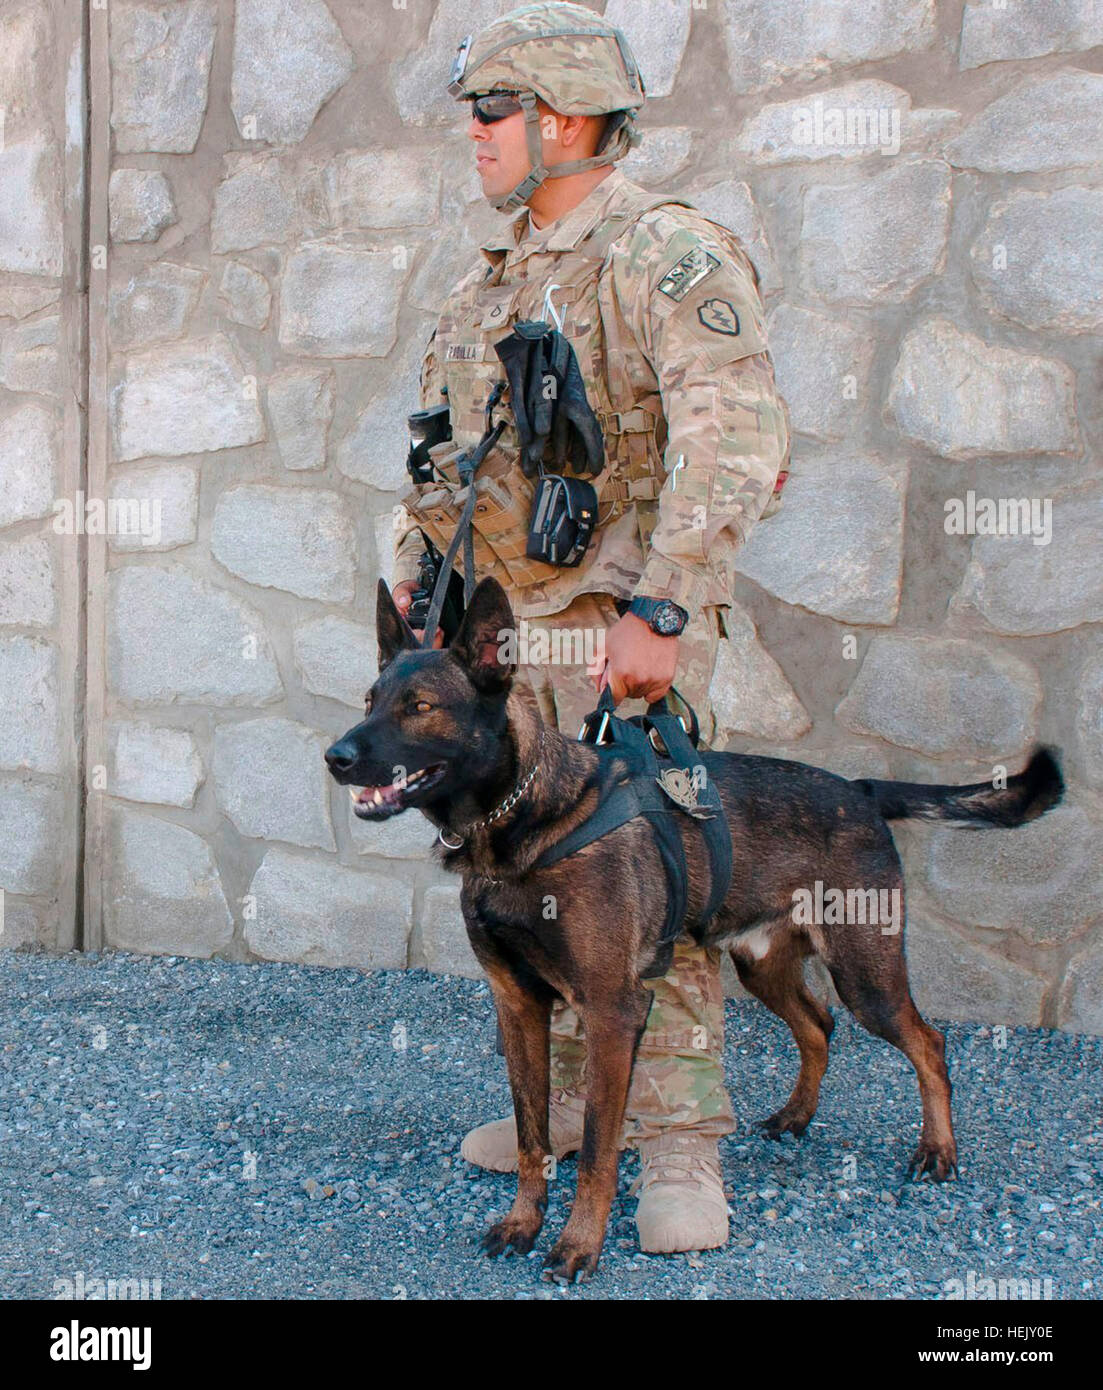 NANGARHAR PROVINCE, Afghanistan — U.S. Army 25th Infantry Divison Pfc. Alexander Padilla of Chicago, Ill., guards - Stock Image